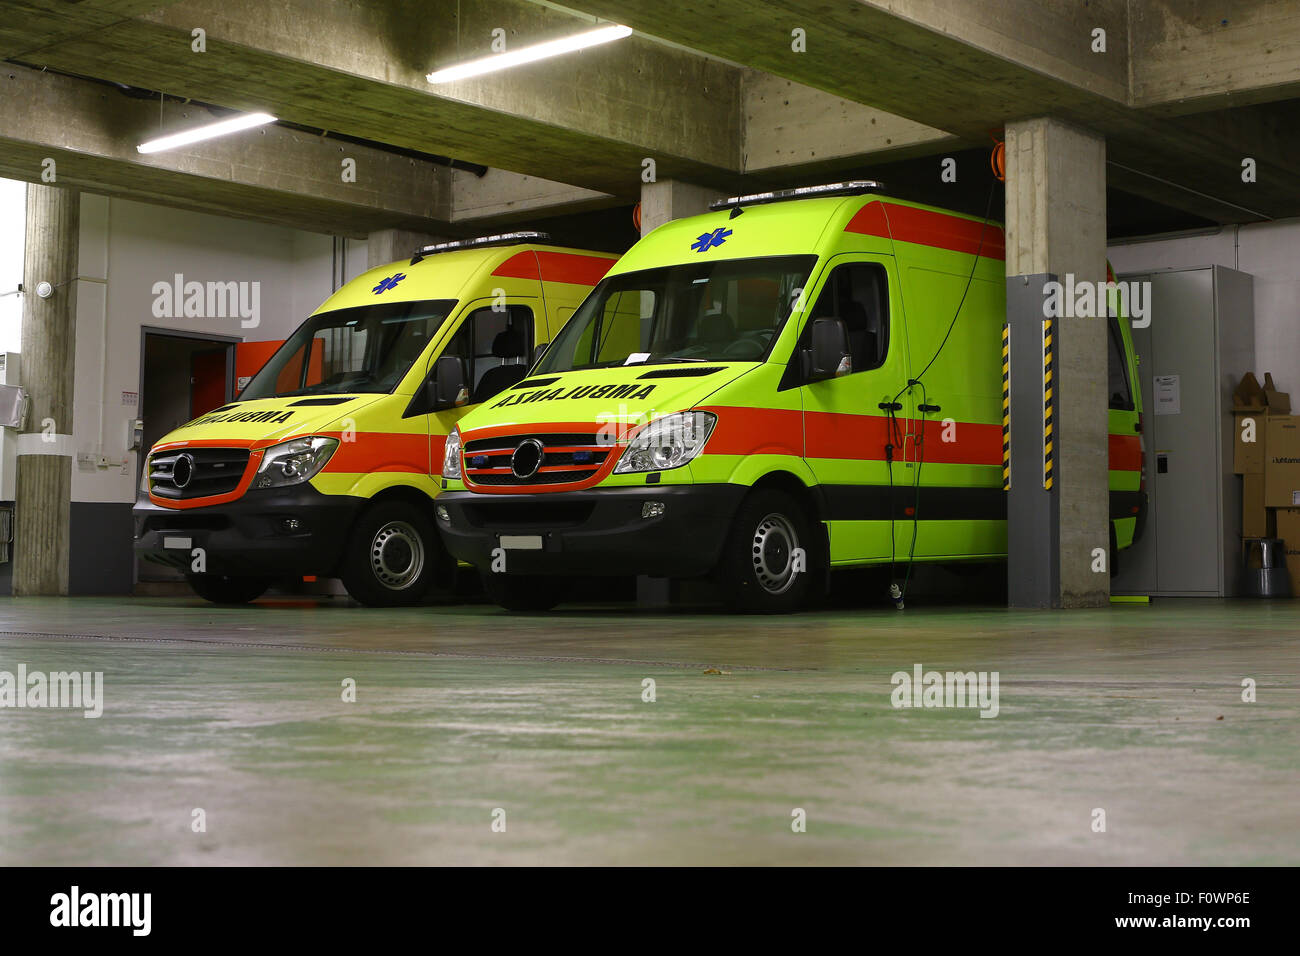 Emergency vehicles, parked yellow ambulance - Stock Image